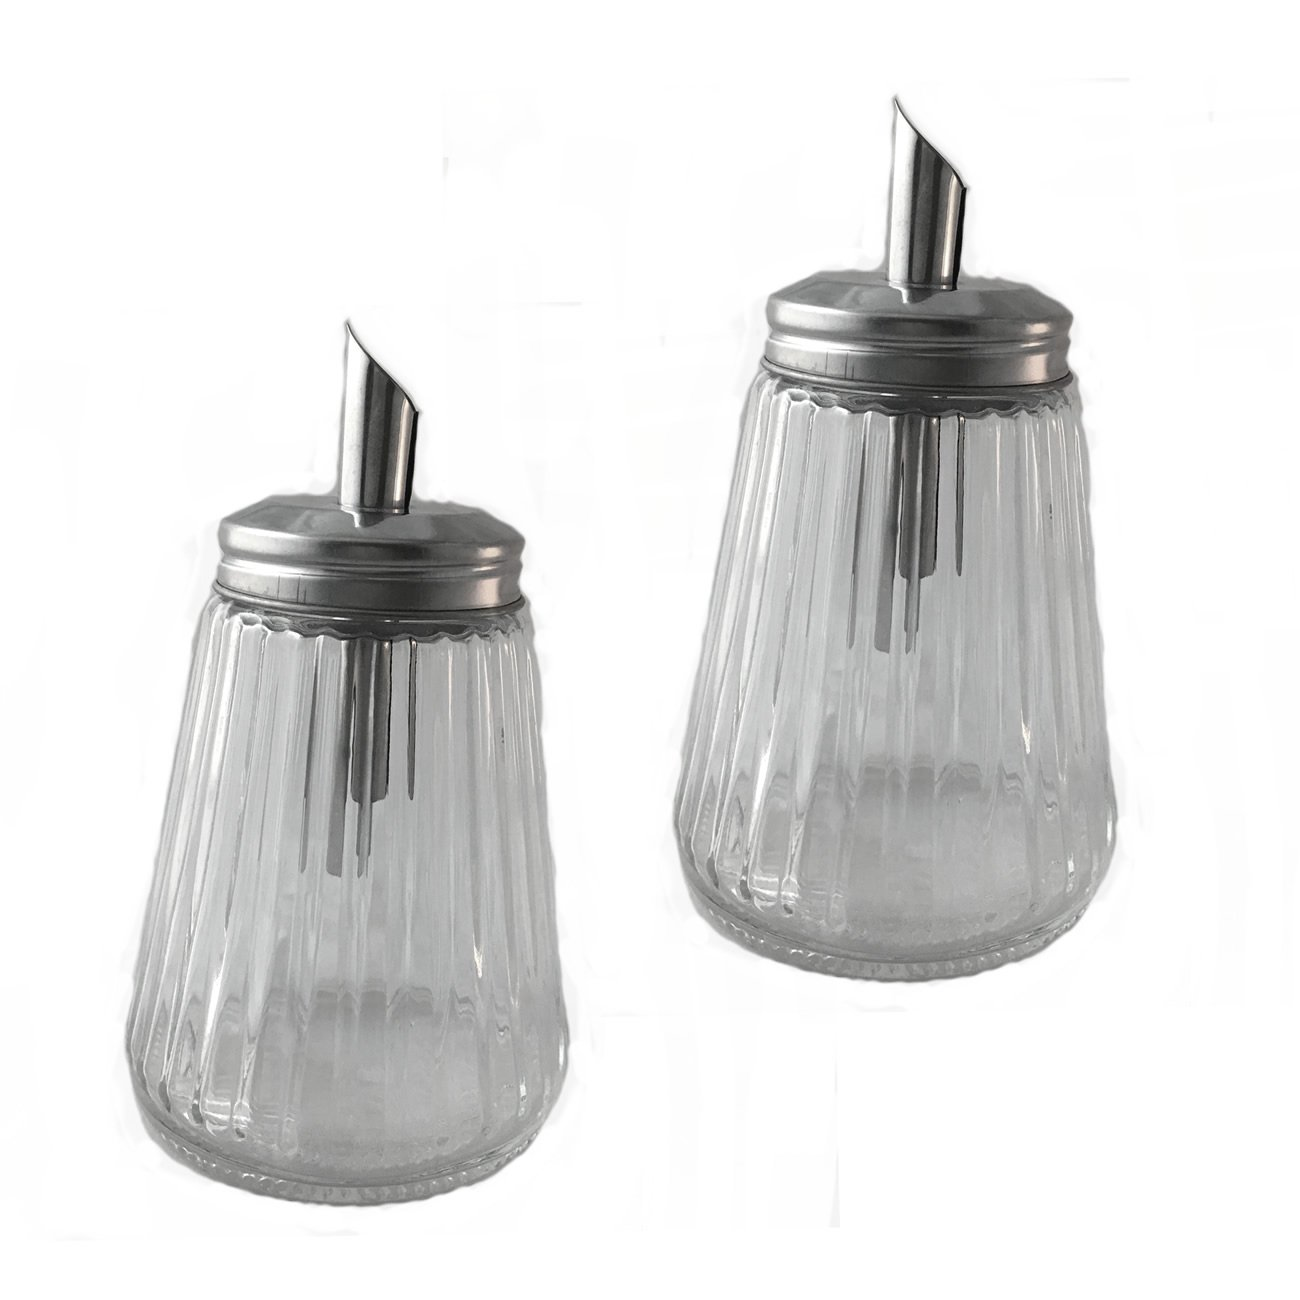 9 oz Glass Sugar Shaker Pourer Restaurant And Diner Style Bottle (Pack of 2)